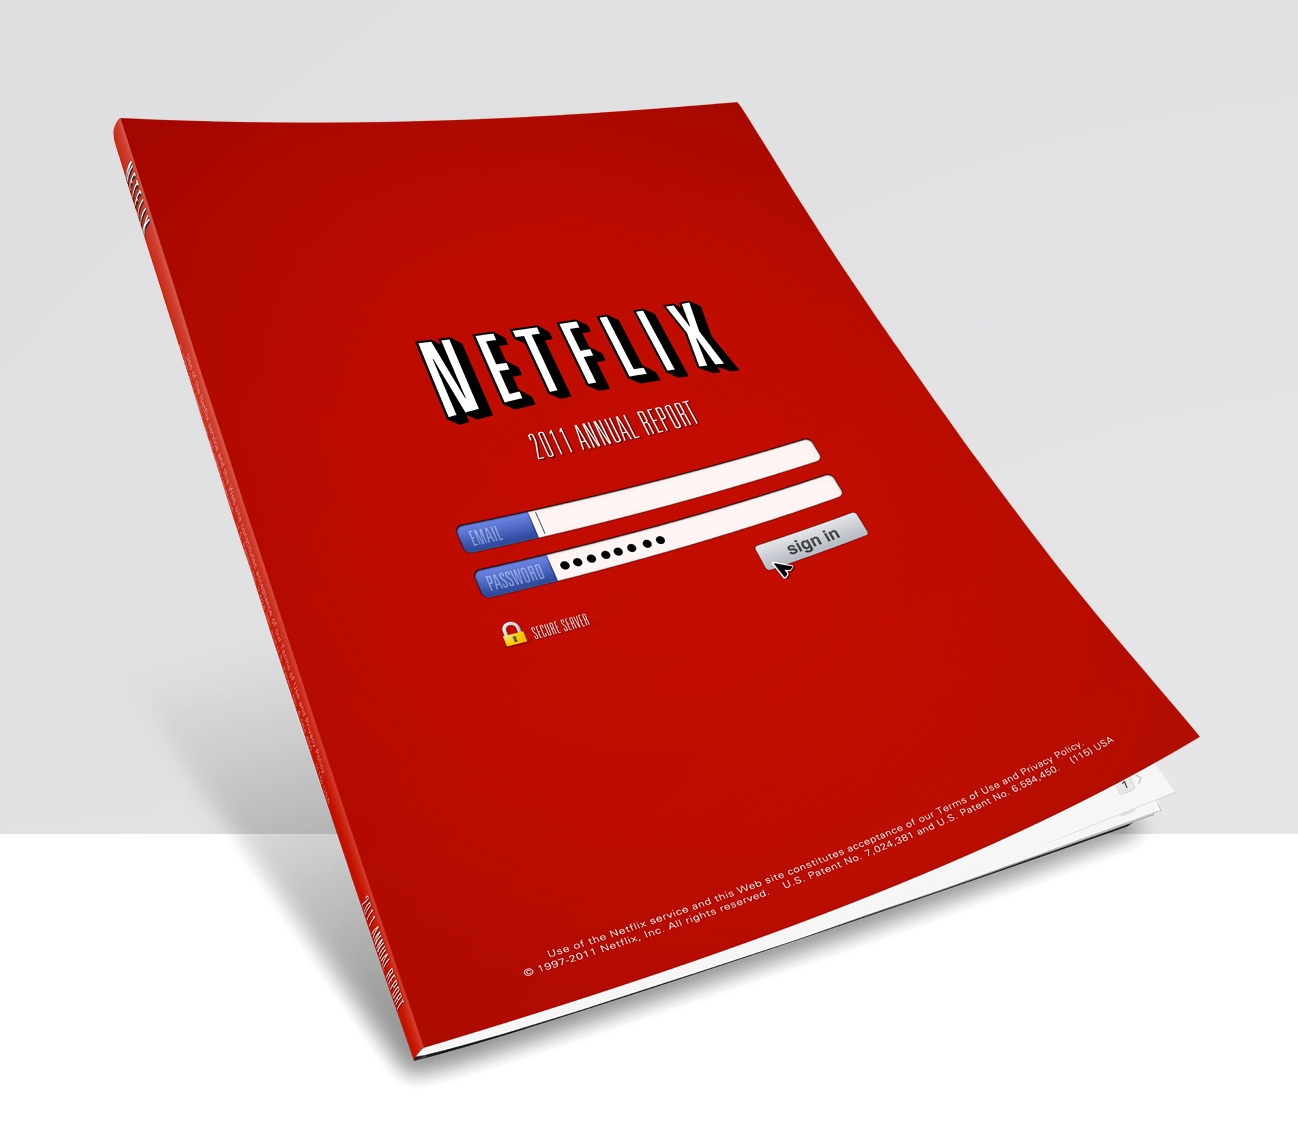 netflix report Tips and instructions for reporting a phishing, scam, or fraudulent email or text  message from a sender posing as netflix.